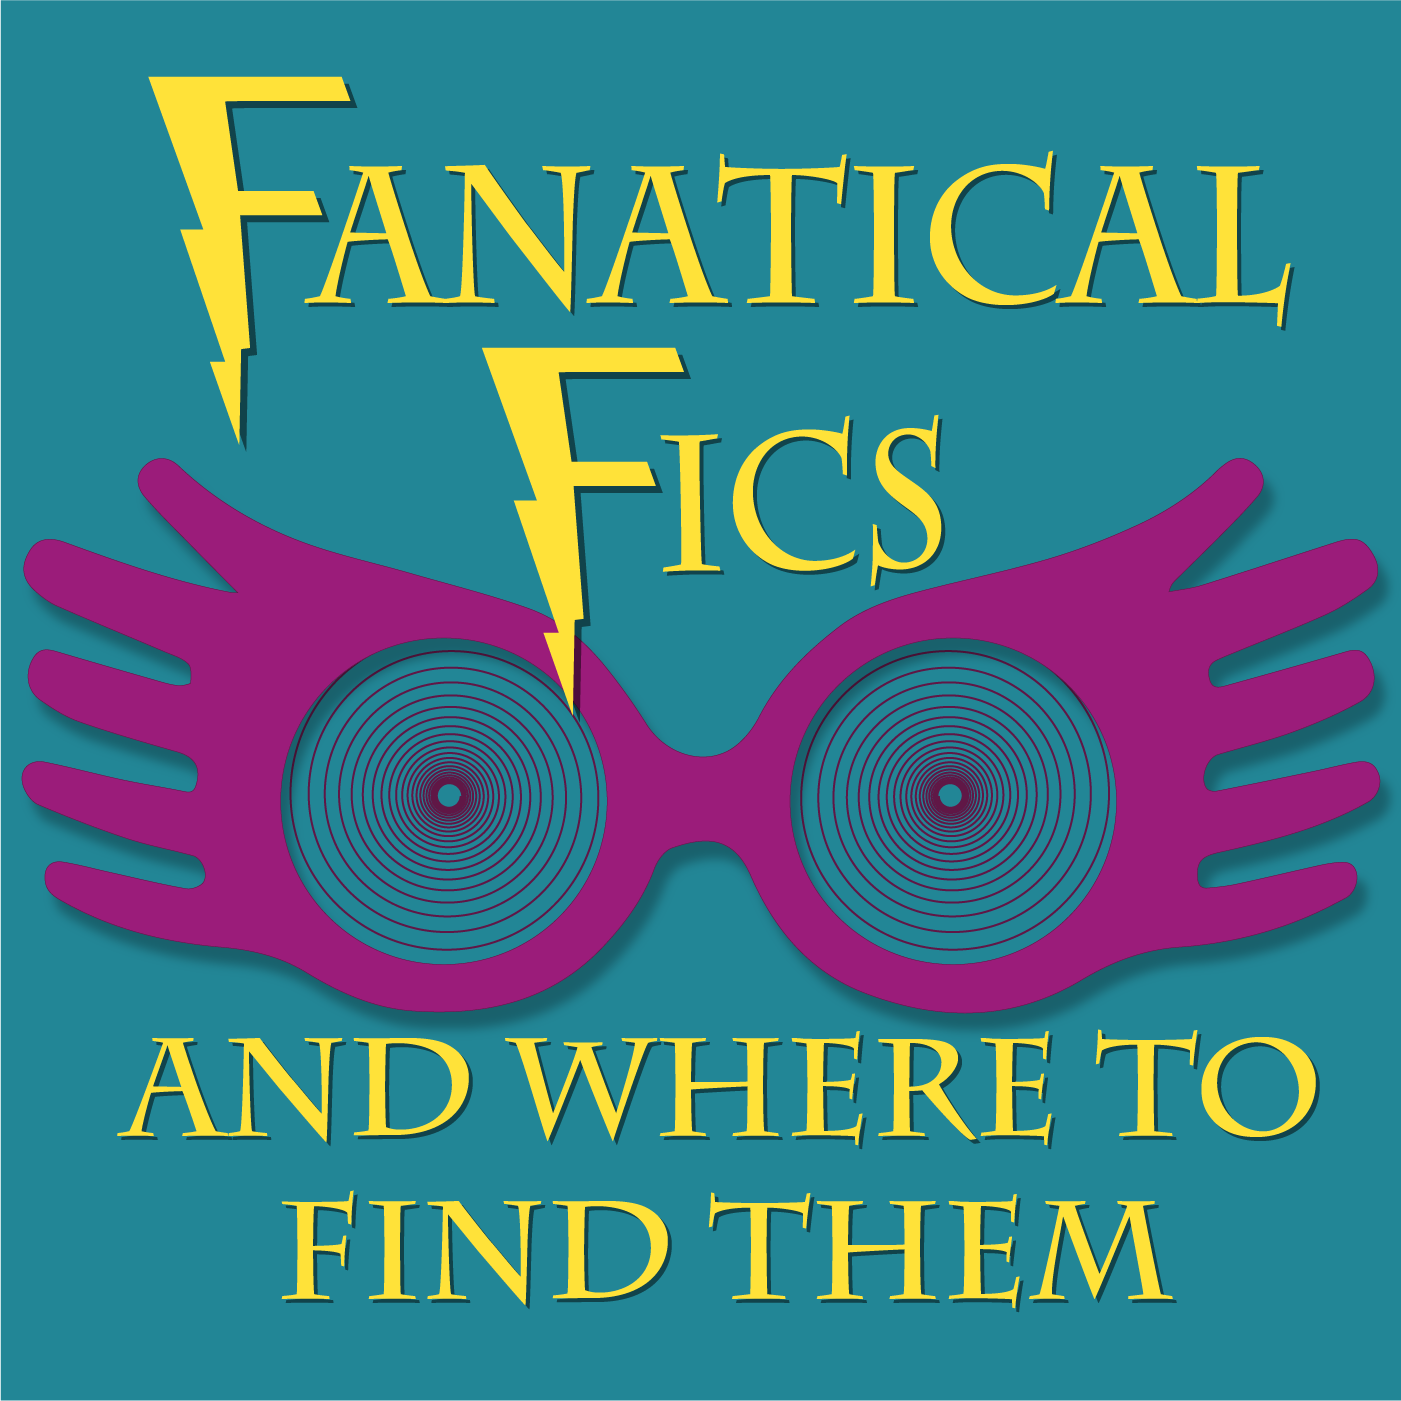 A Harry Potter Podcast - Fanatical Fics and Where to Find Them